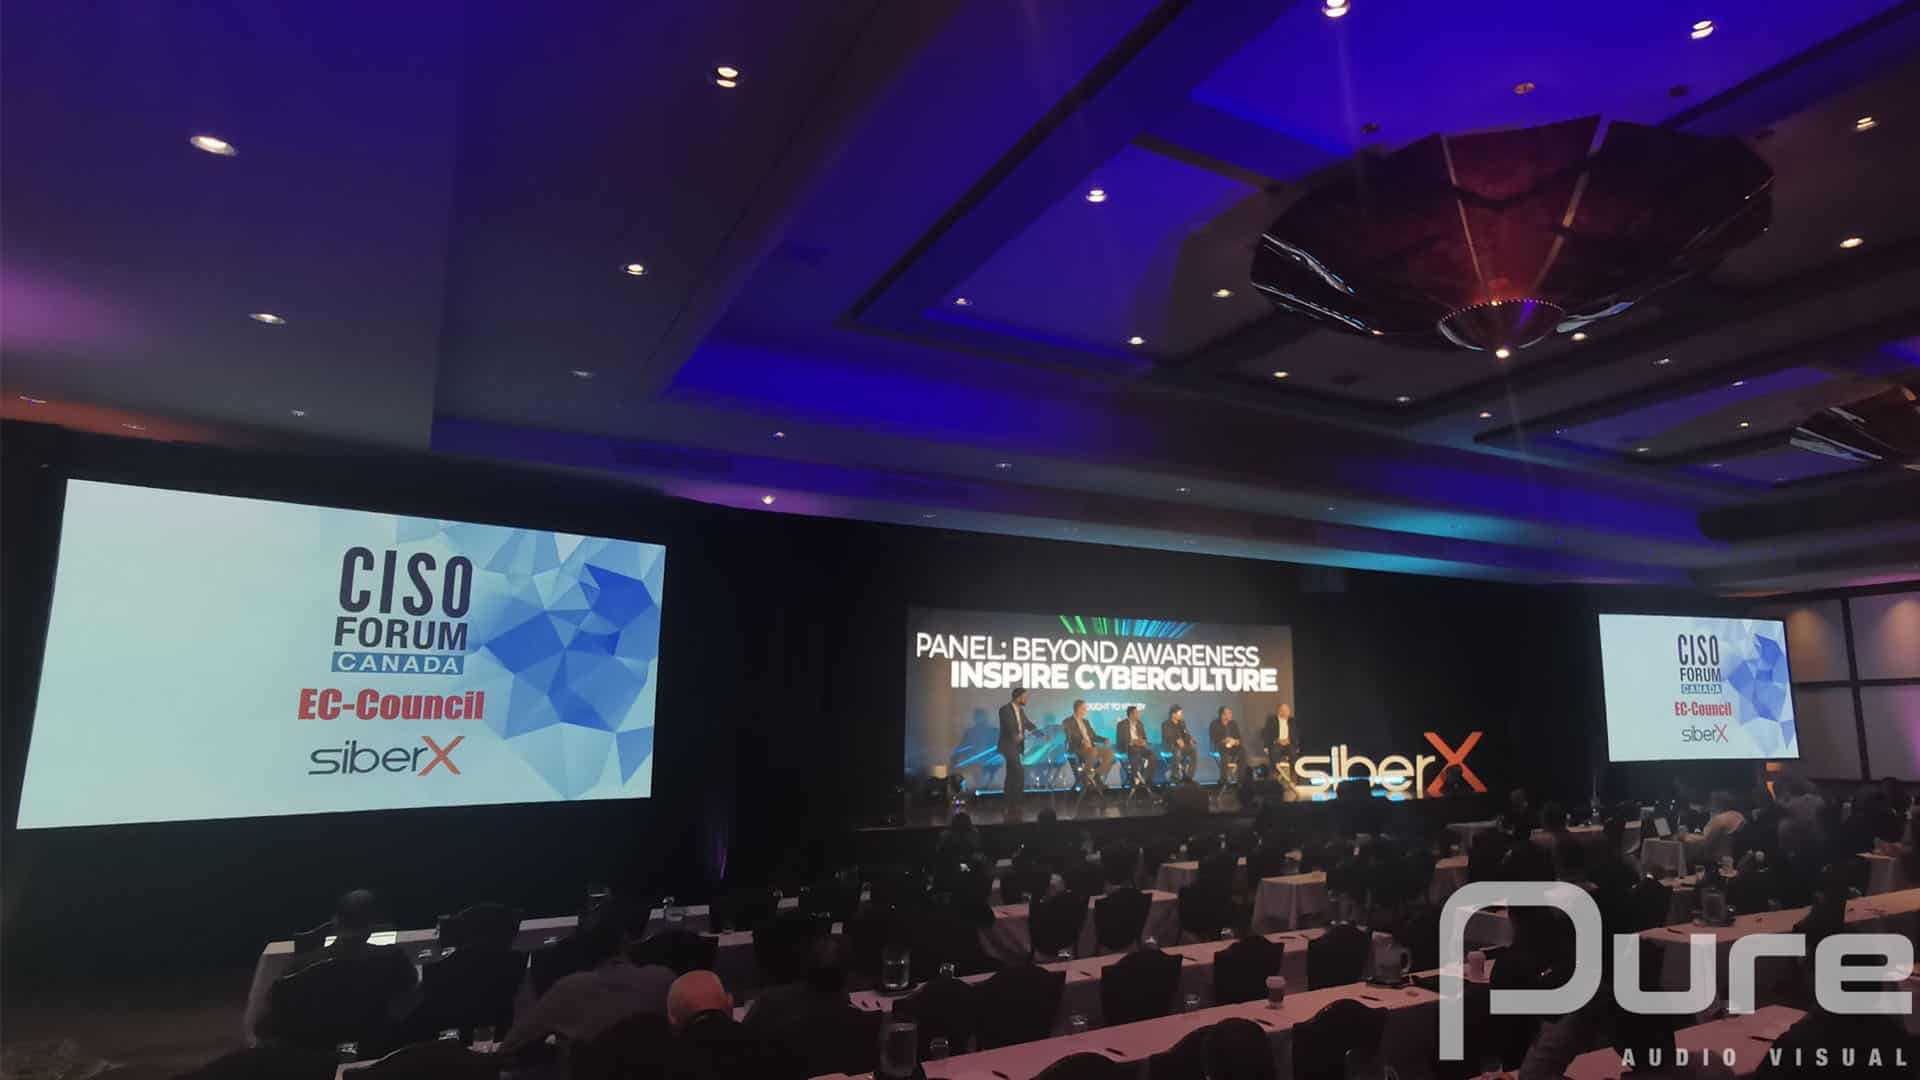 SiberX, Conference, Toronto, AV, Audio Visual, AV Company, Screens, LED Video Wall,